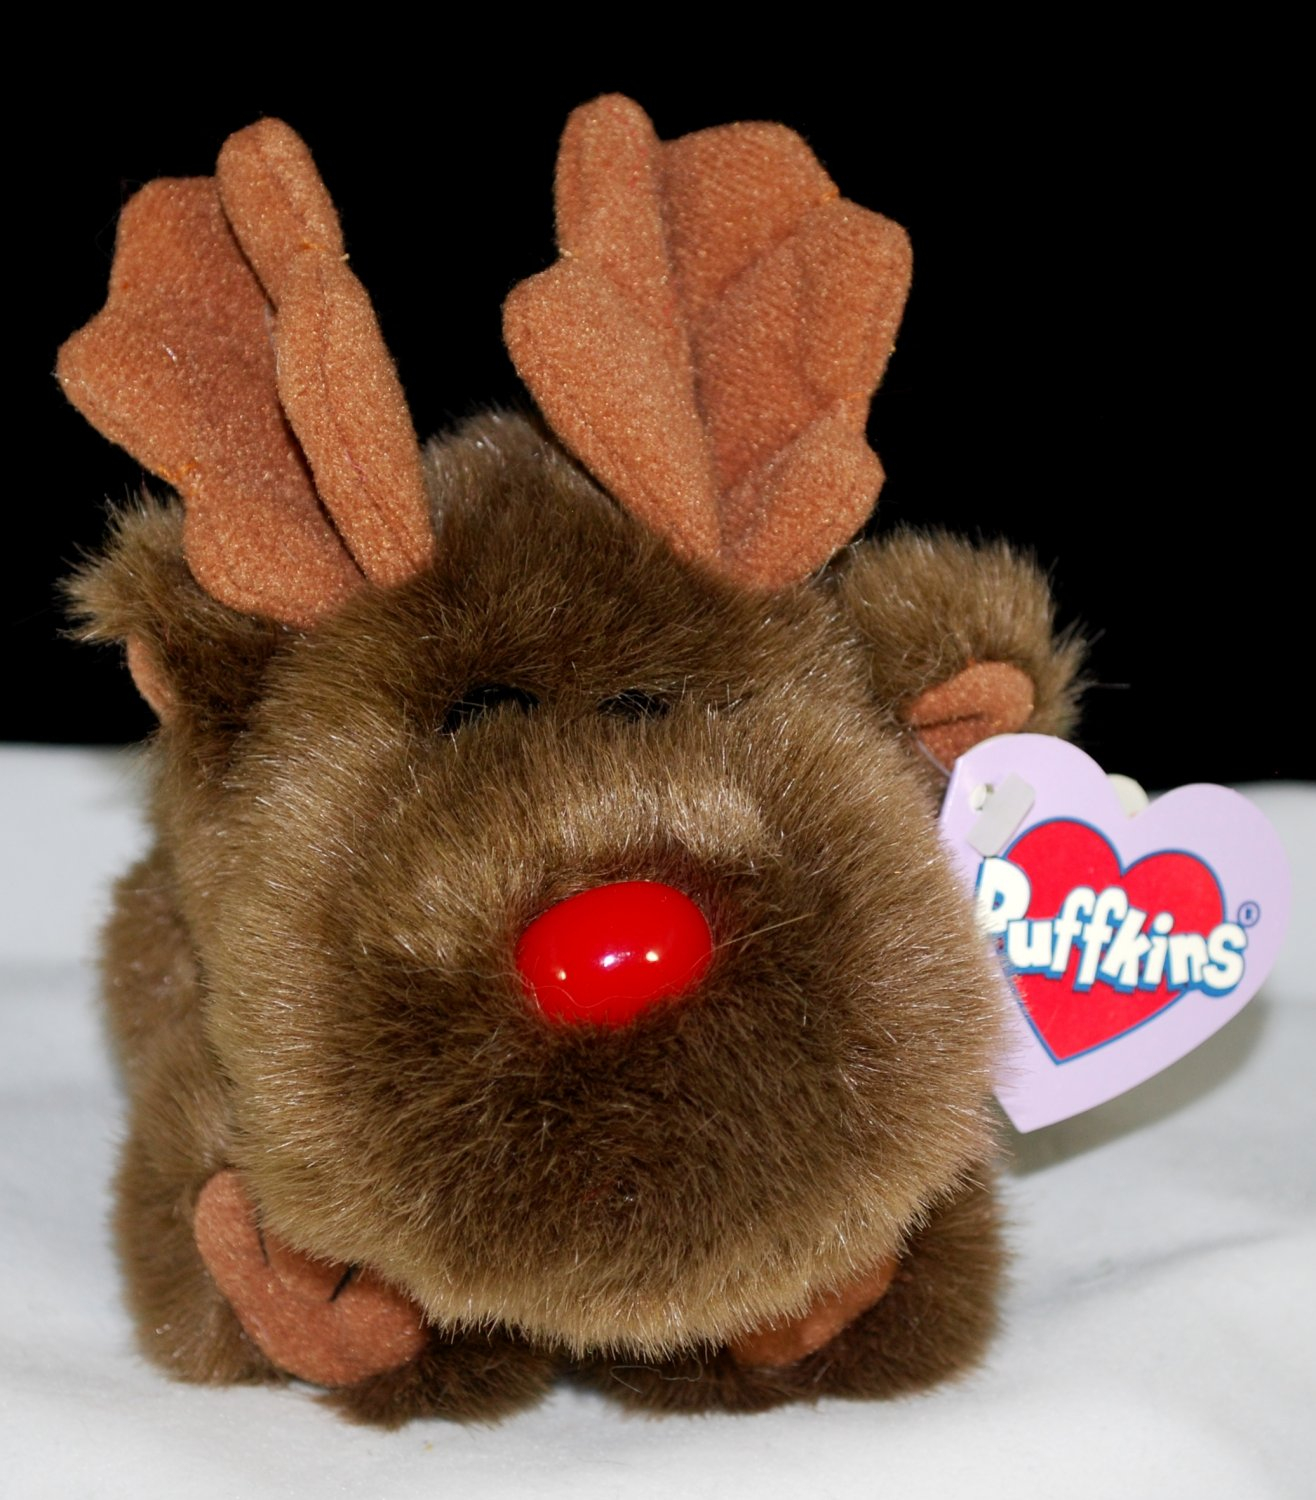 Christmas Puffkins Moosletoe the Moose Plush Swibco Style 6703